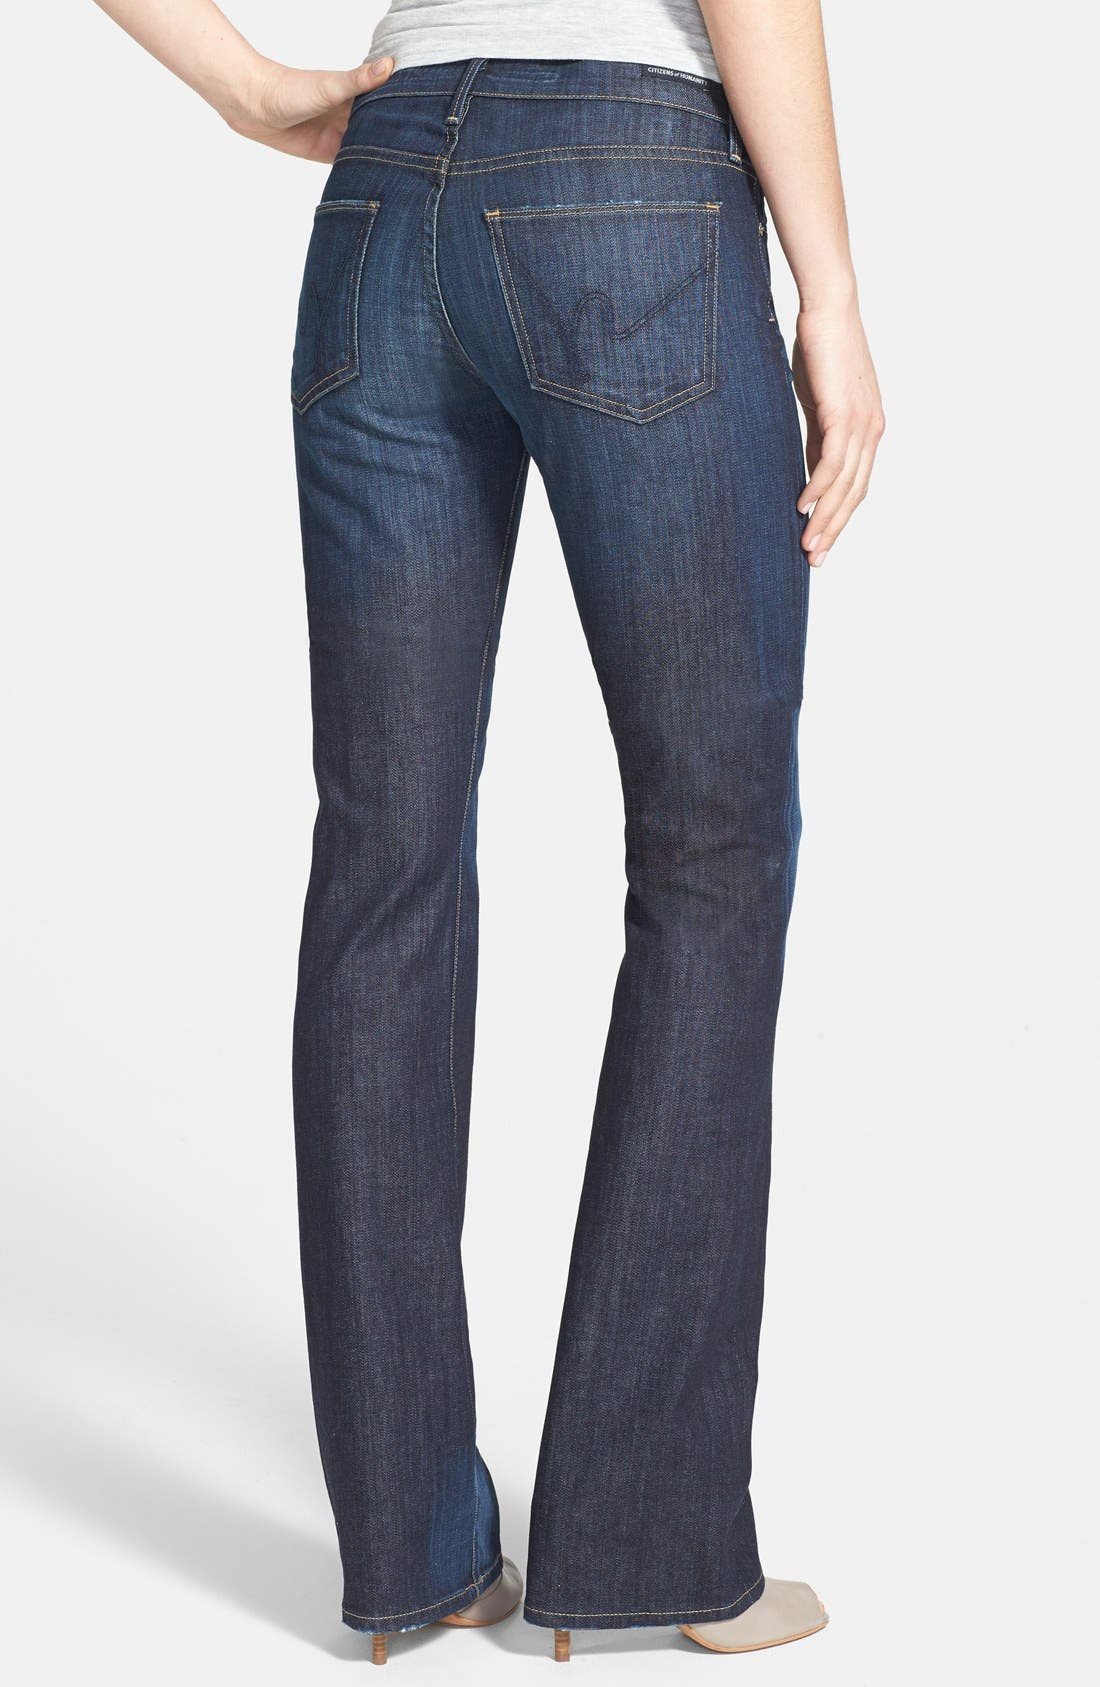 Alternate Image 2  - Citizens of Humanity 'Kelly' Bootcut Stretch Jeans (New Pacific)